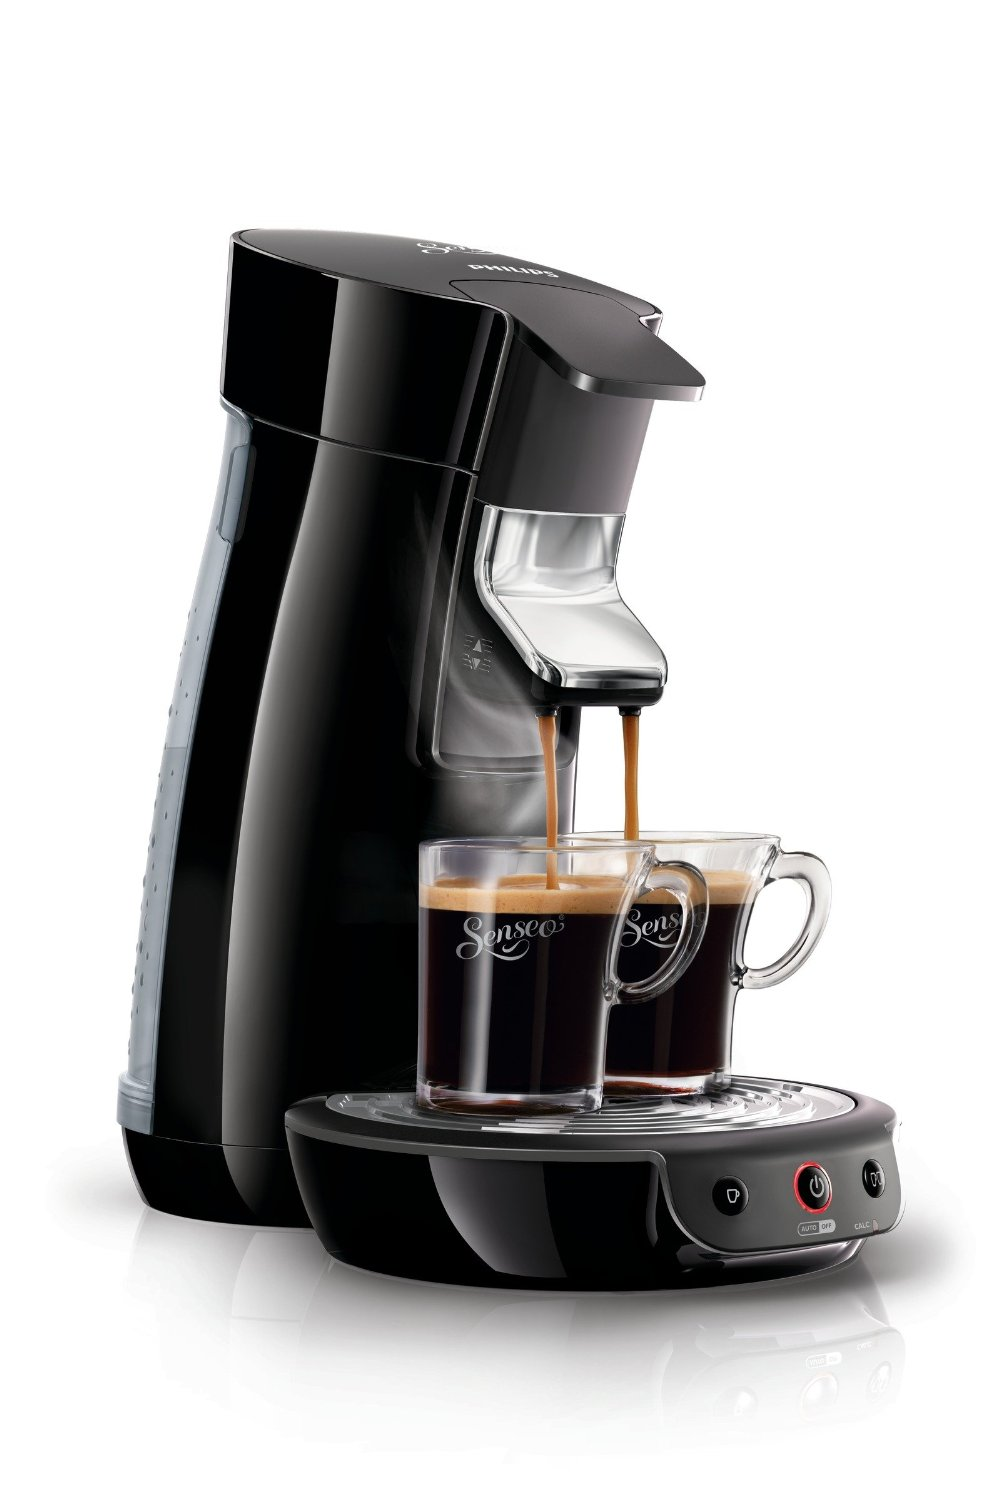 Tassimo Coffee Maker Vs Dolce Gusto : Tassimo Vs Nespresso, DolceGusto & Senseo Coffee Pod Machines. - Coffee Blog